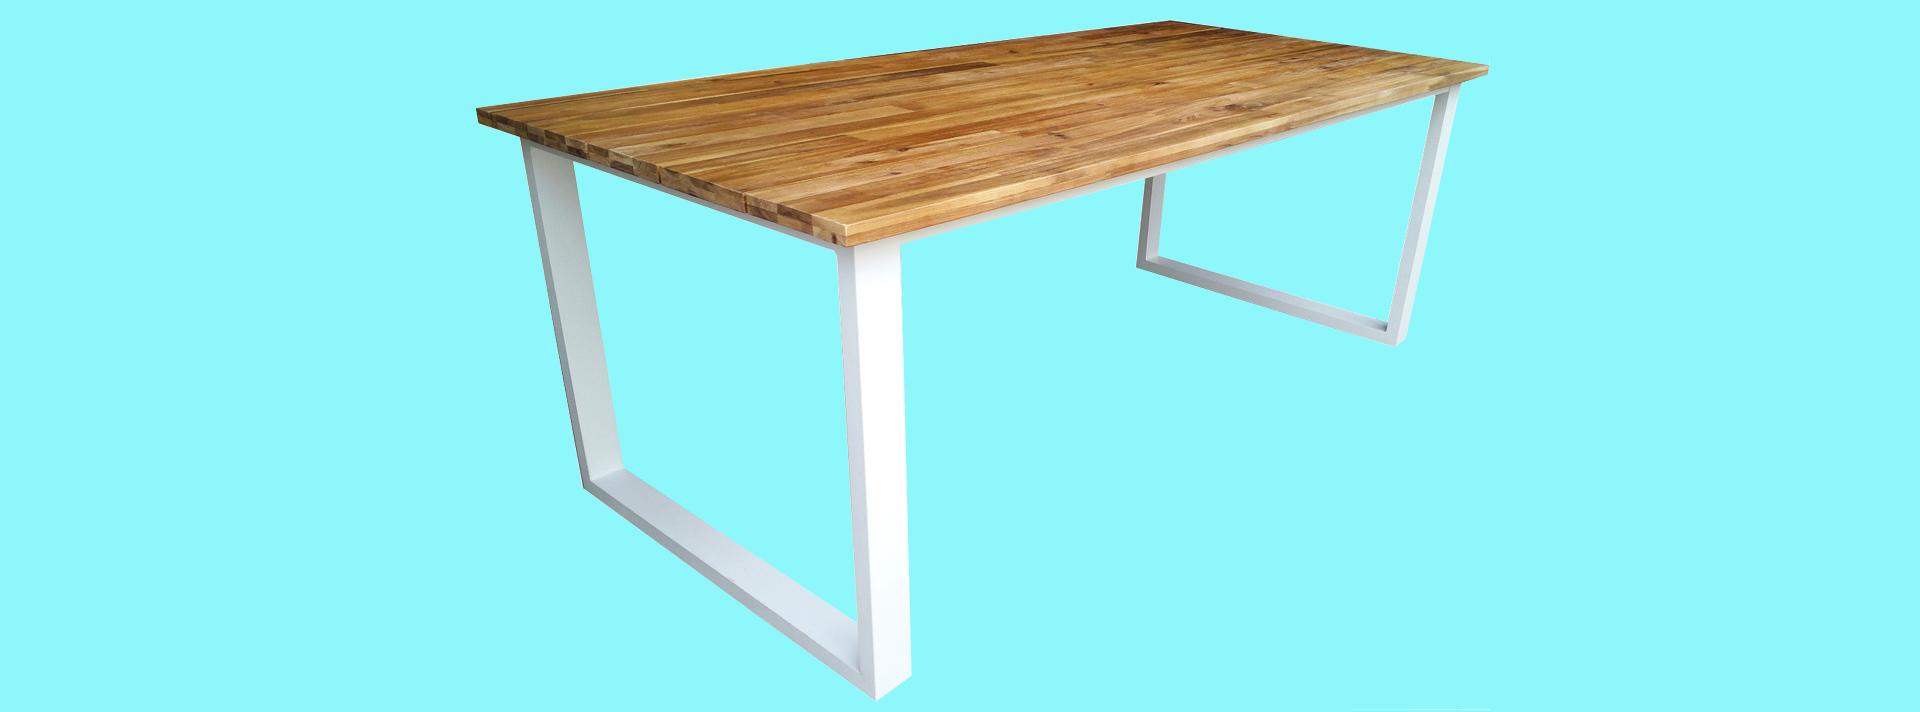 Korting Melbourne dining table 210x100x78 cm